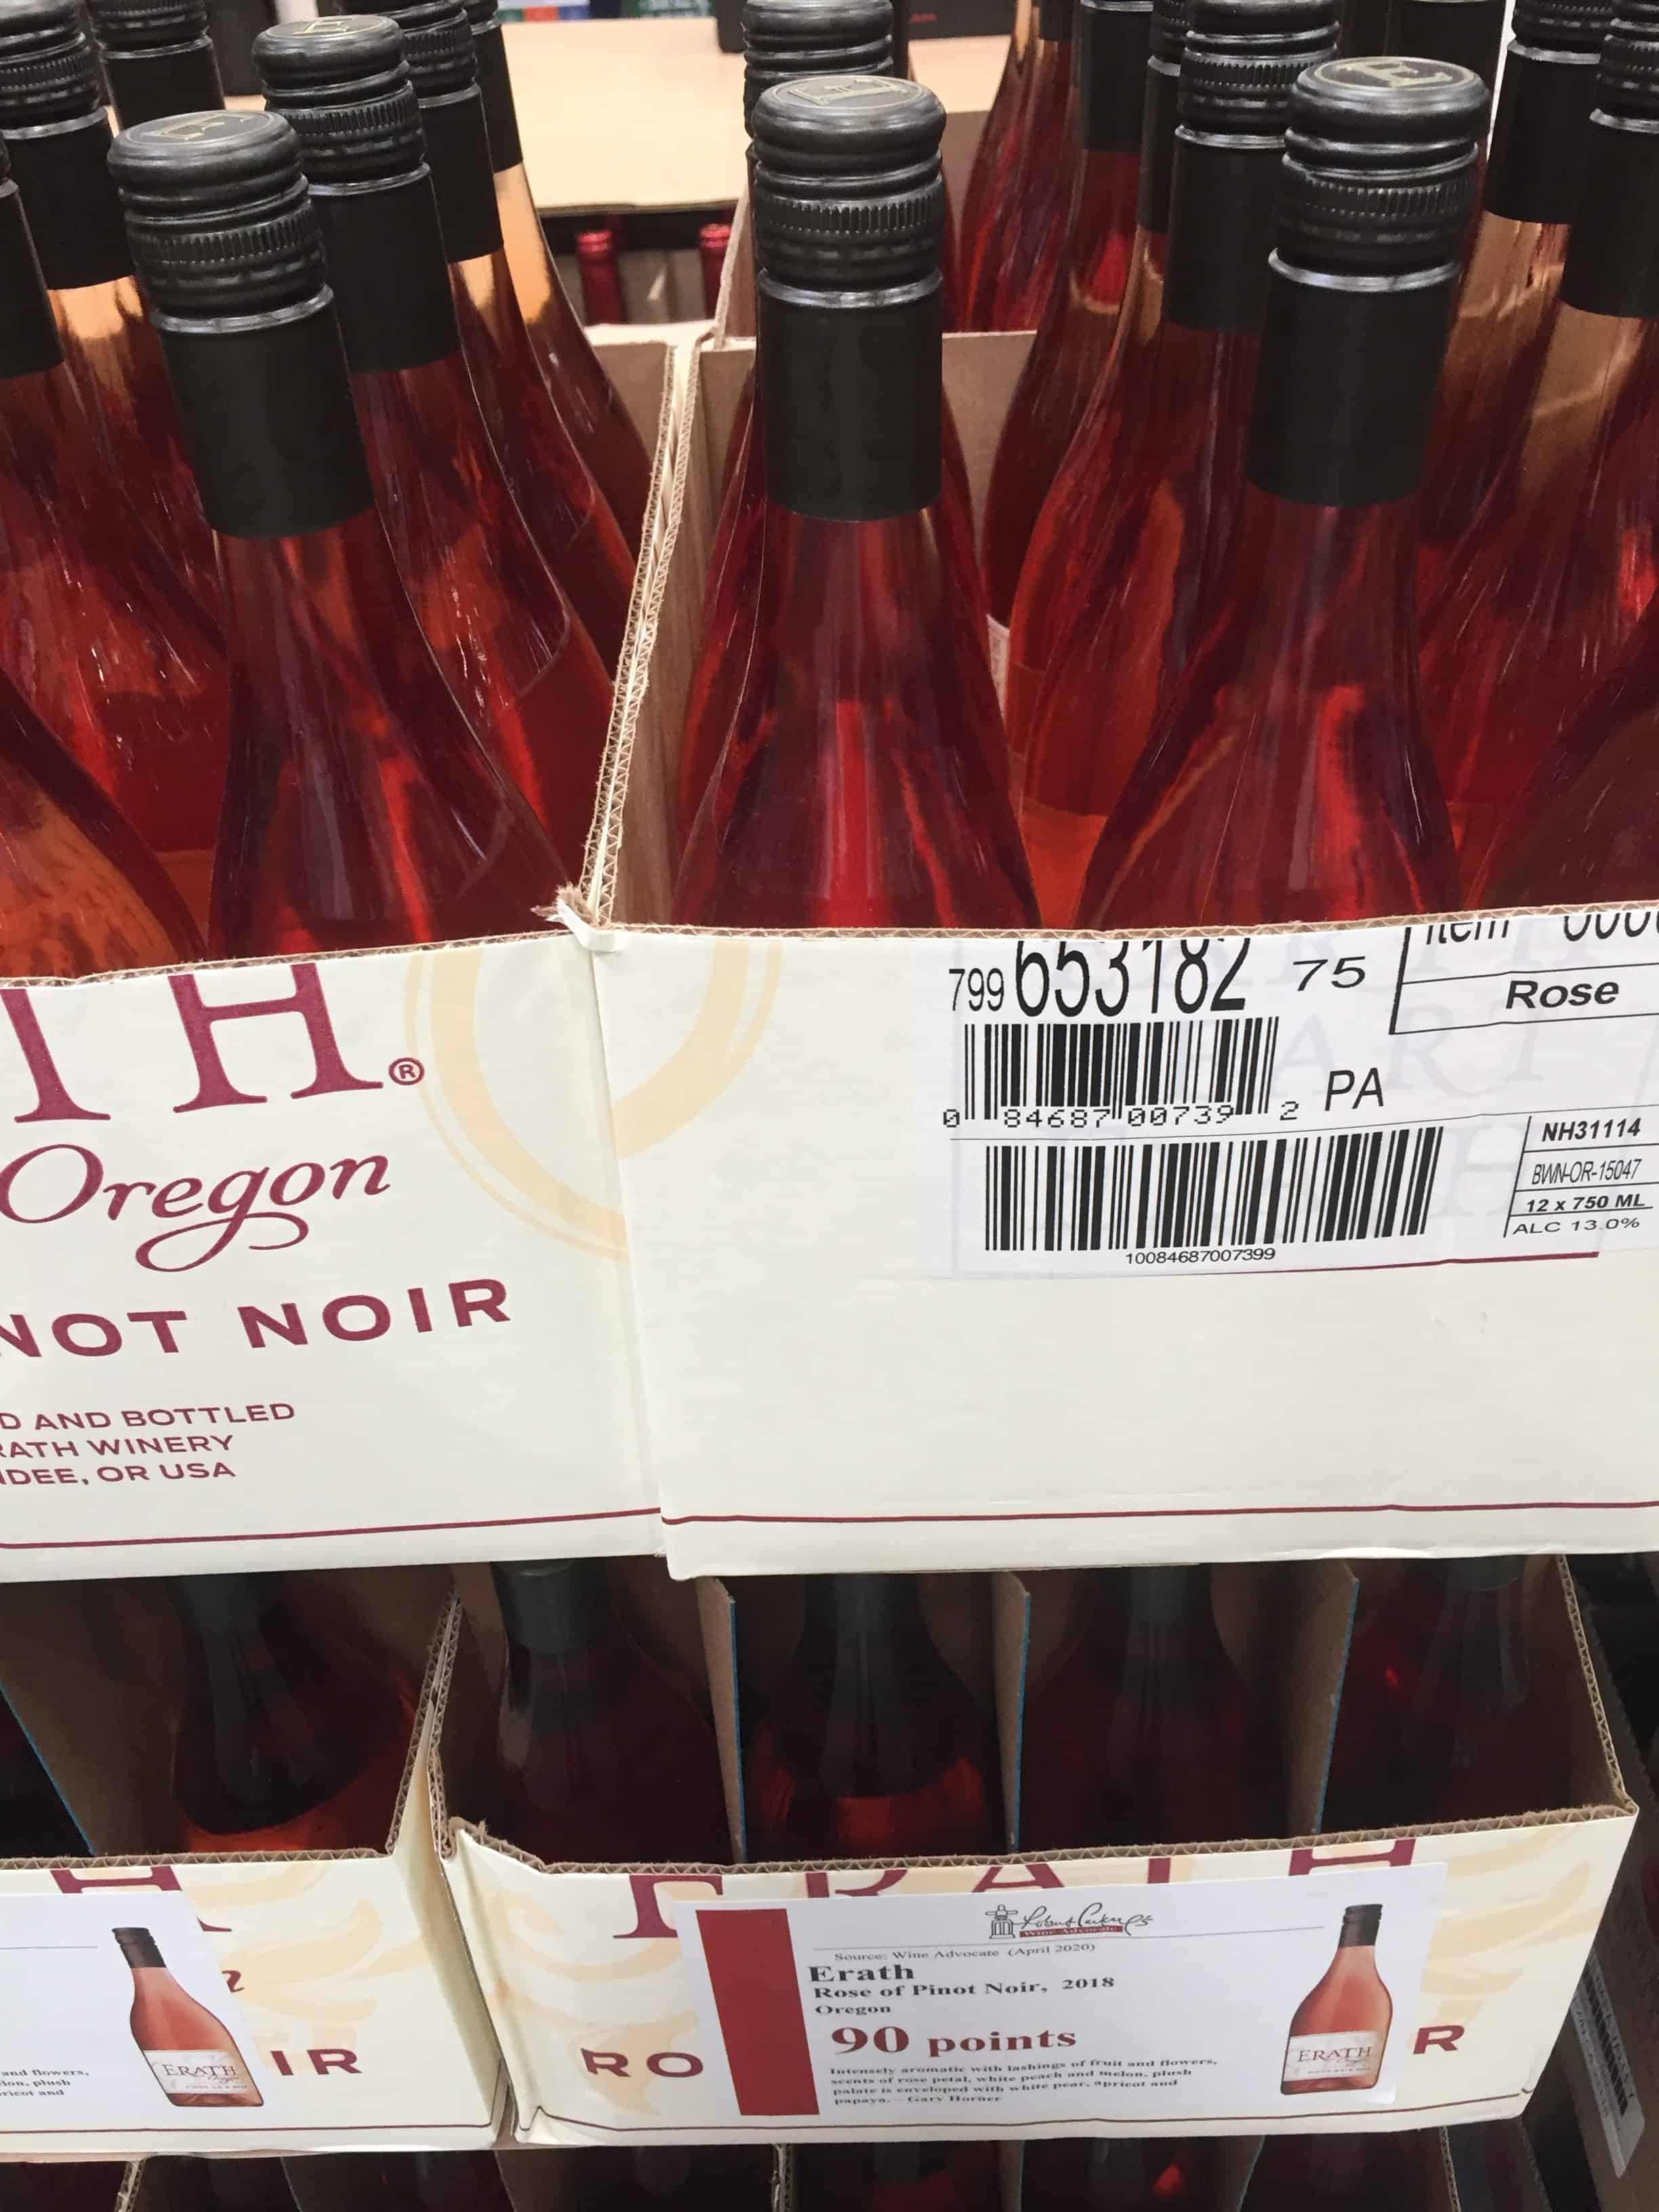 2018 Erath Winery Rosé of Pinot Noir case-stacked at Costco.